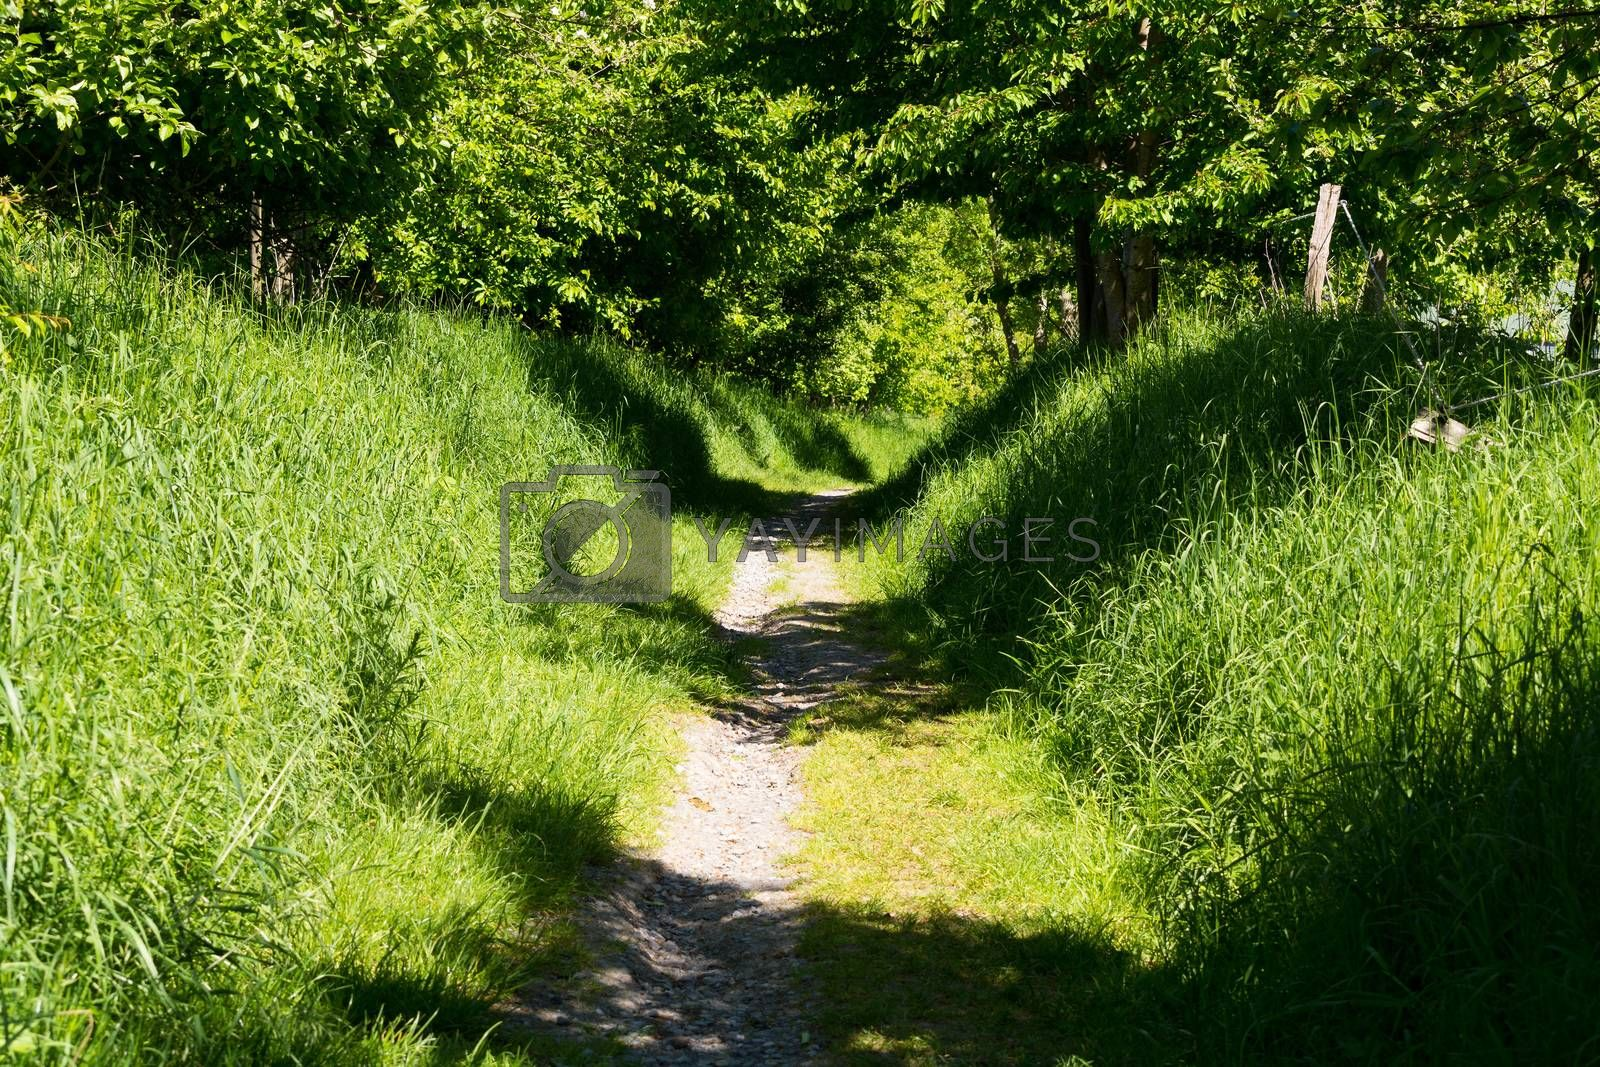 Fairytale forest landscape alley way outdoor space park nature landscape environment with path for walking among trees and sunbeams